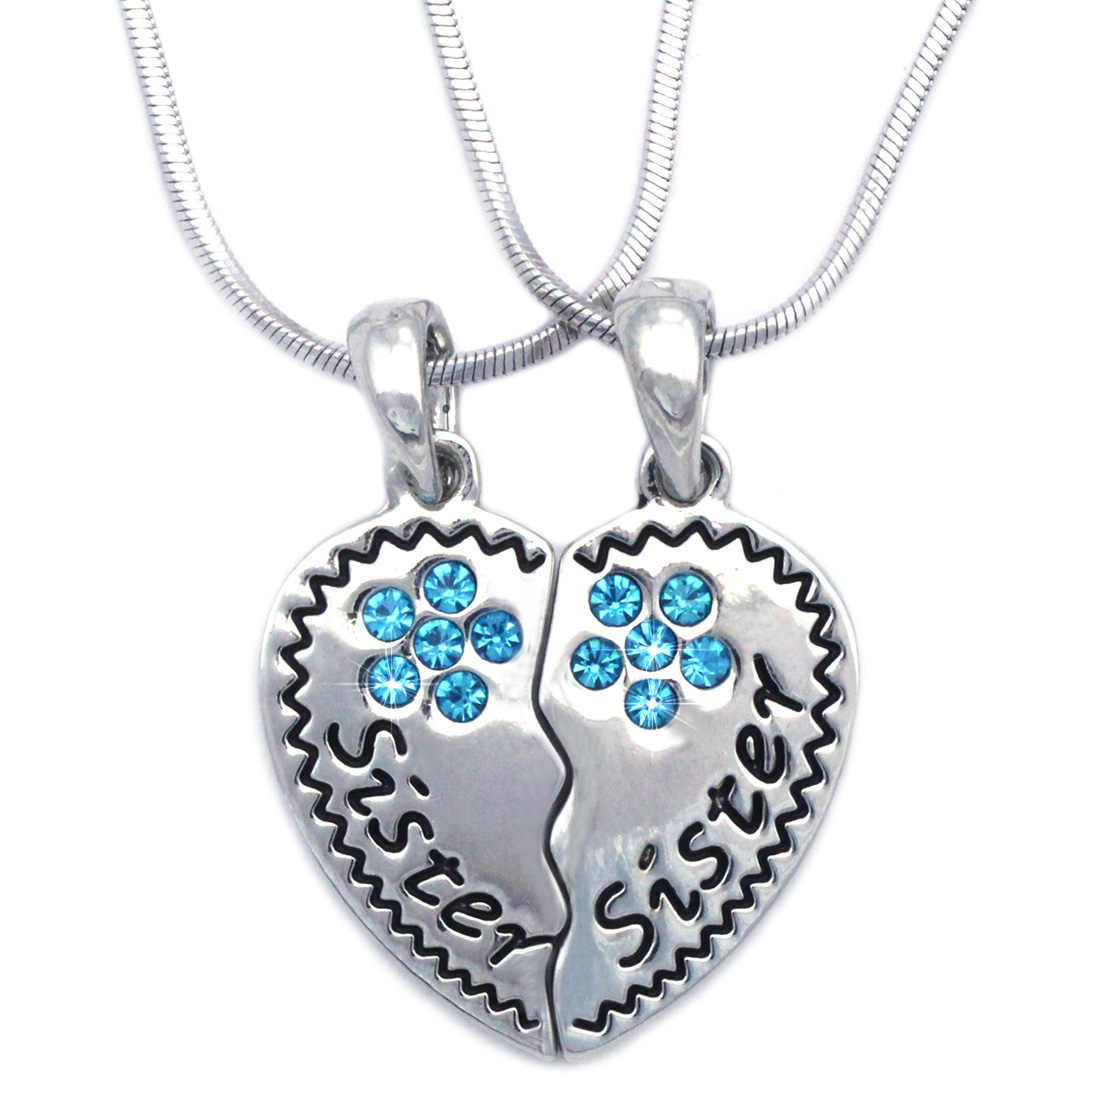 cocojewelry Sister Sister Best Friends BFF Heart Flower Necklace Gift Box